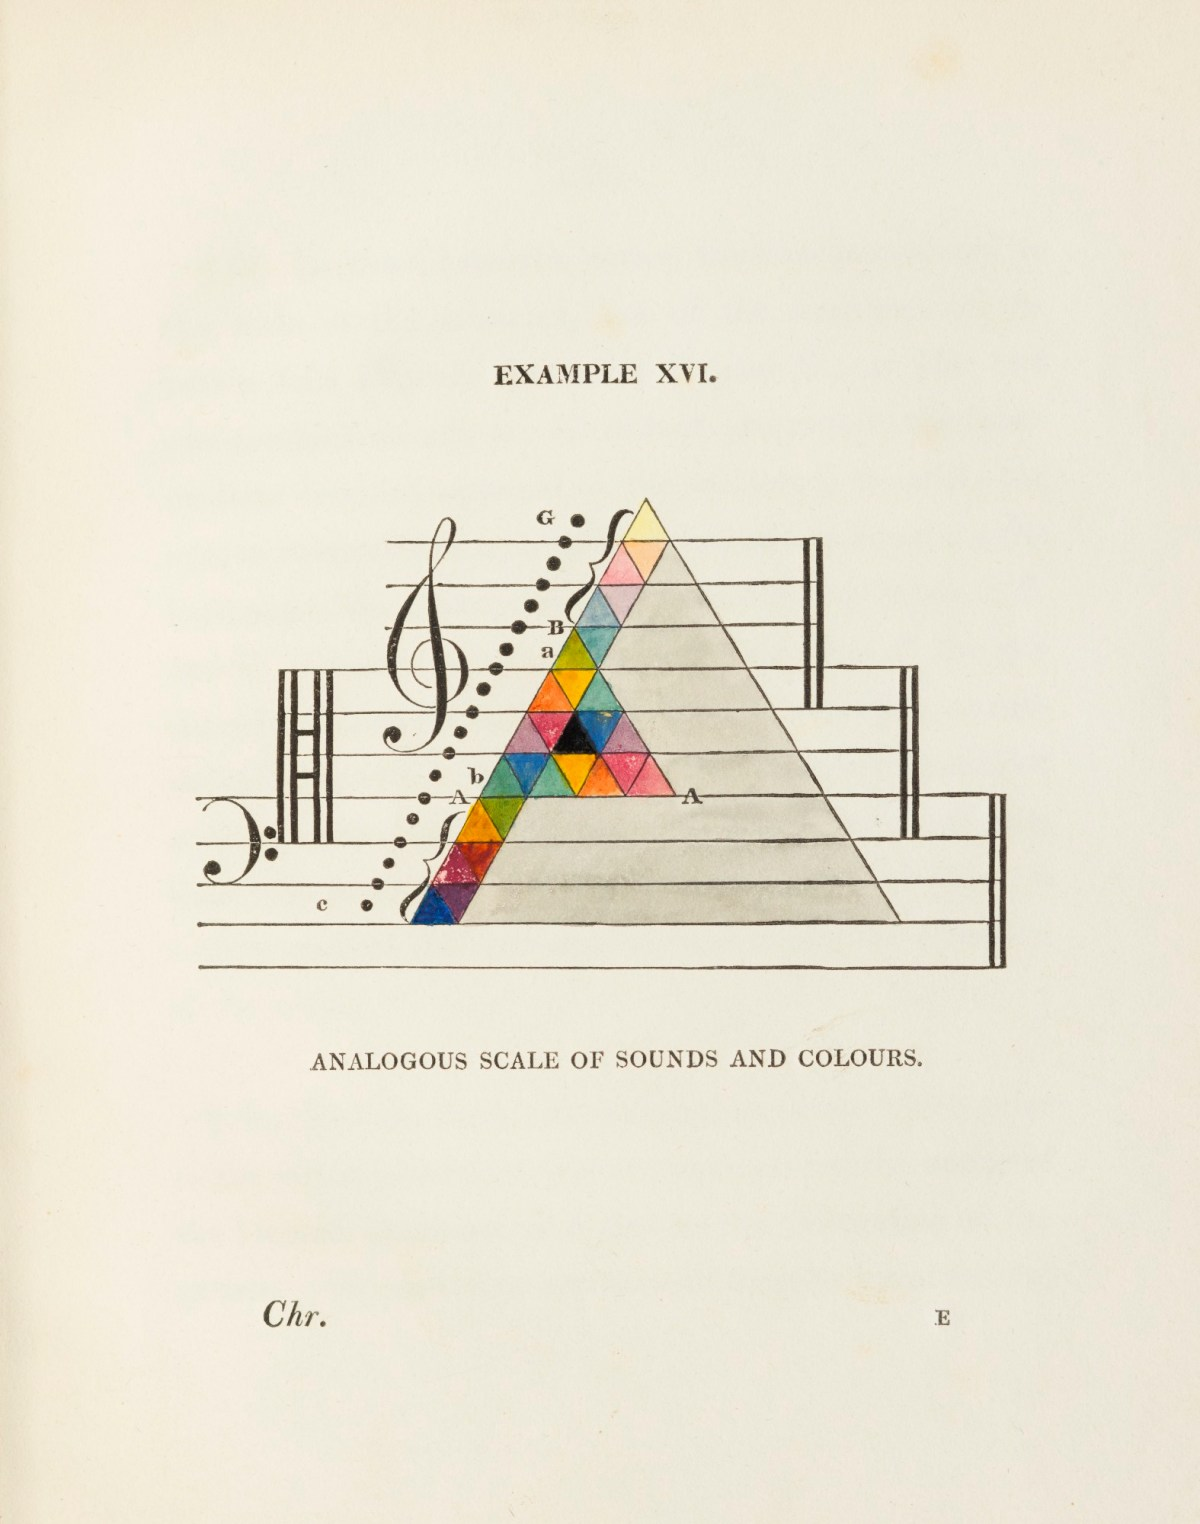 Diagram Of The Analogous Scale Of Sounds And Colours Works Of Art Ra Collection Royal Academy Of Arts